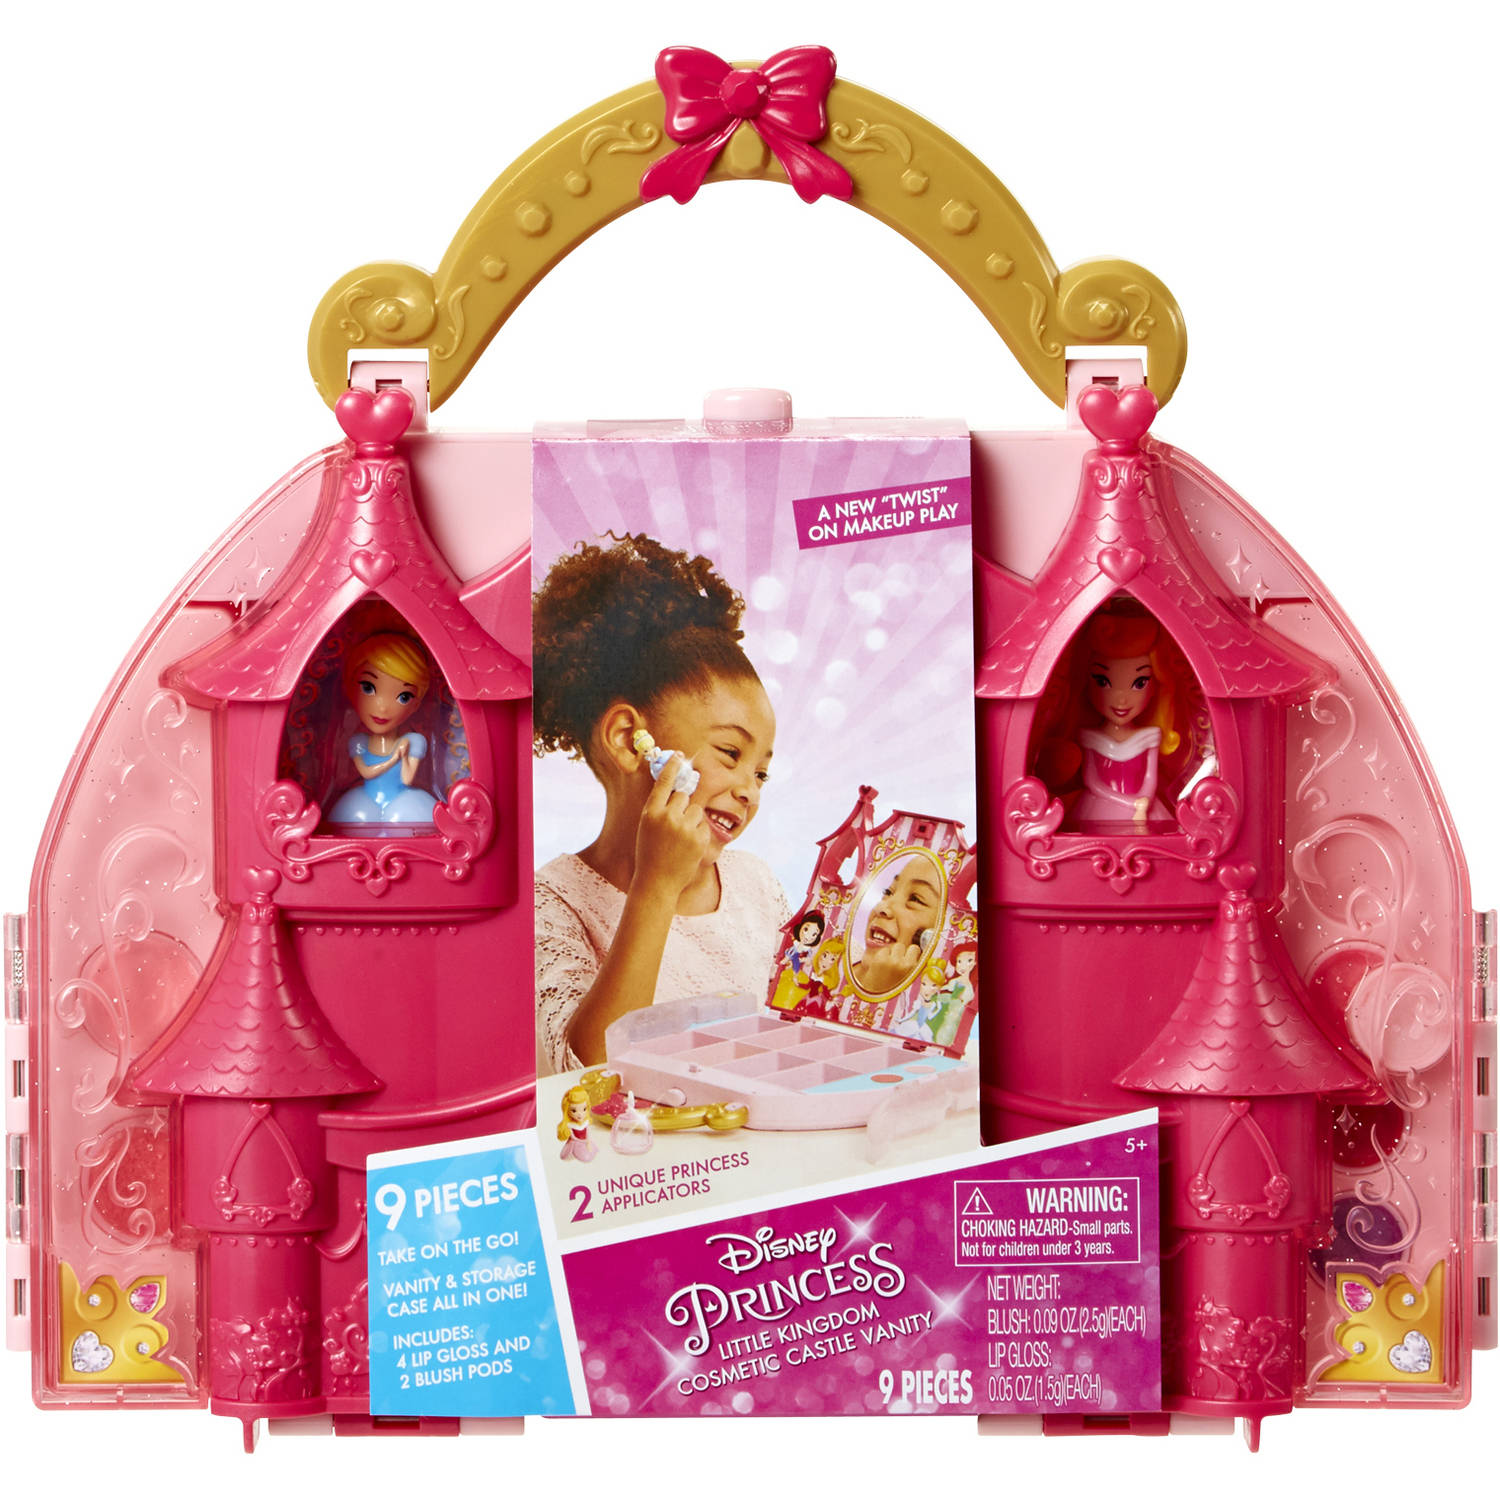 Disney Princess Makeup Collection -Cosmetic Castle Vanity